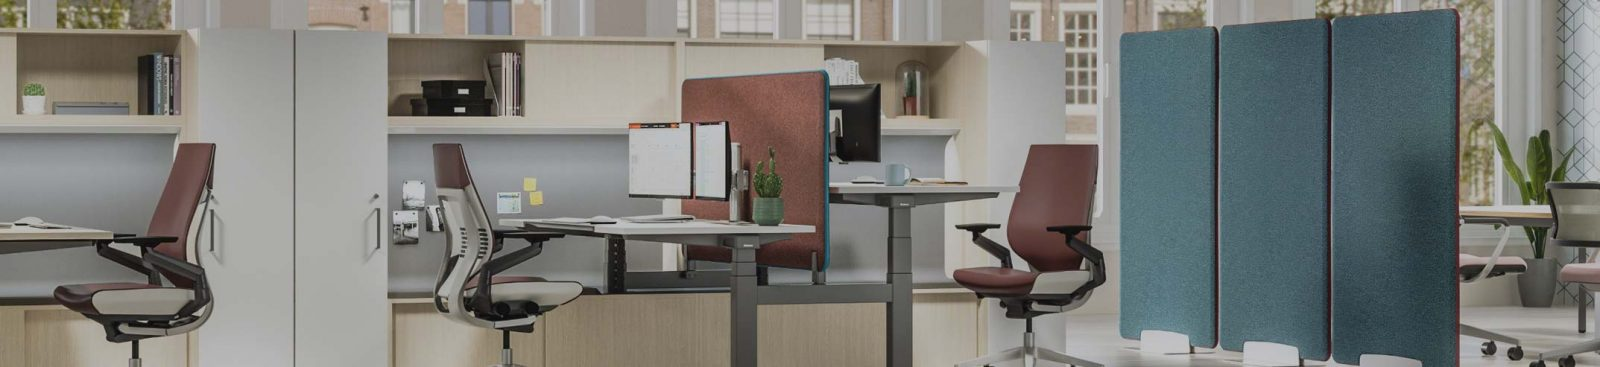 5 alternative space division solutions to plastic desk screens image